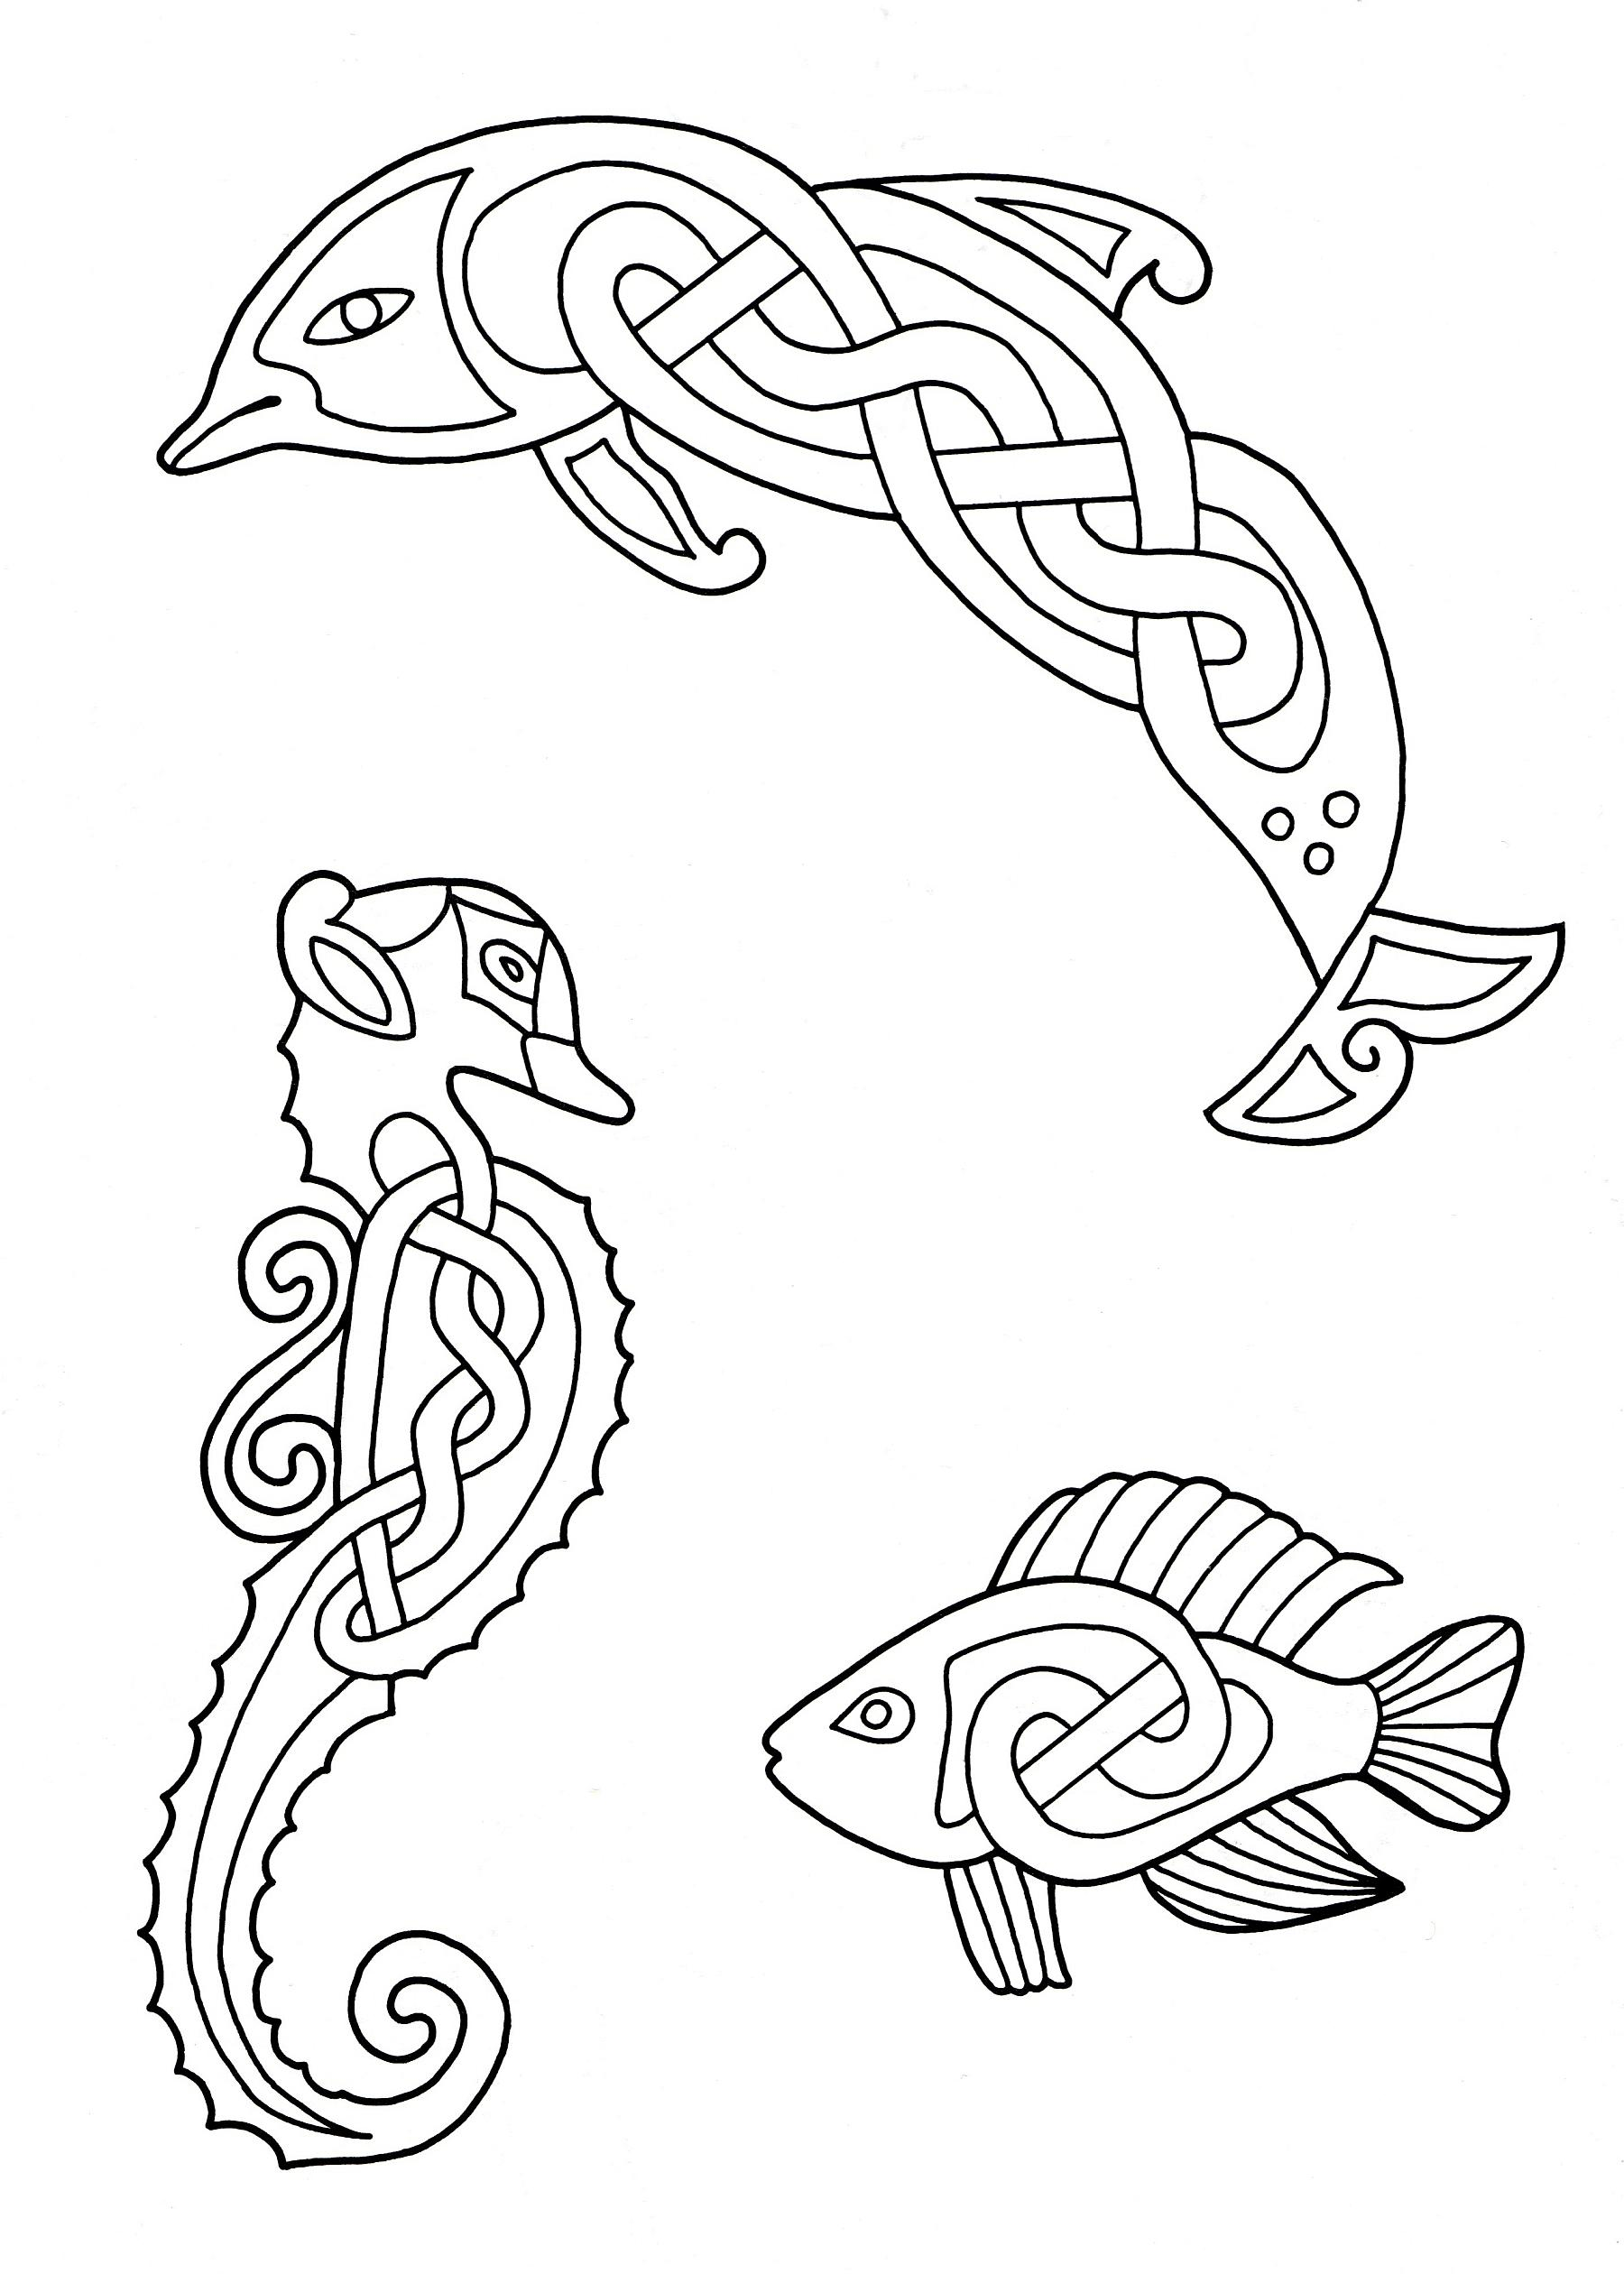 3 Animals Inspired By Celtic Art